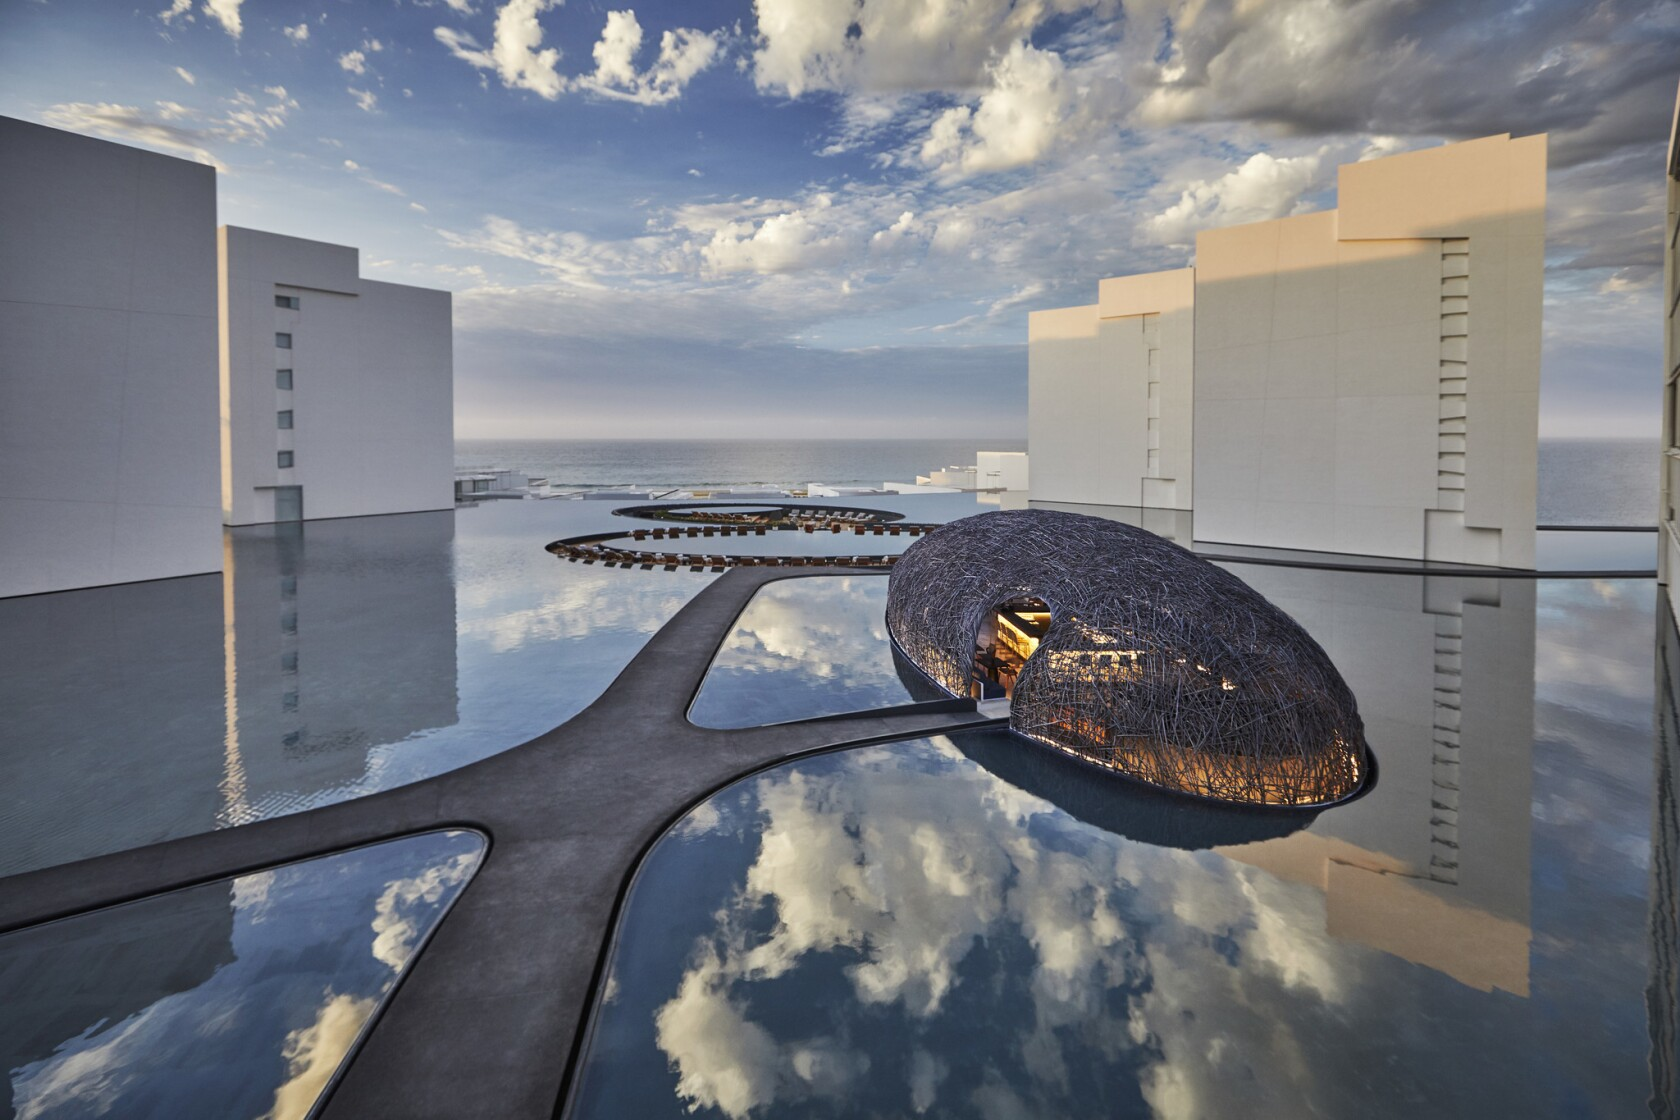 In Los Cabos, Mexico, luxury hotels lure grownups with cushy